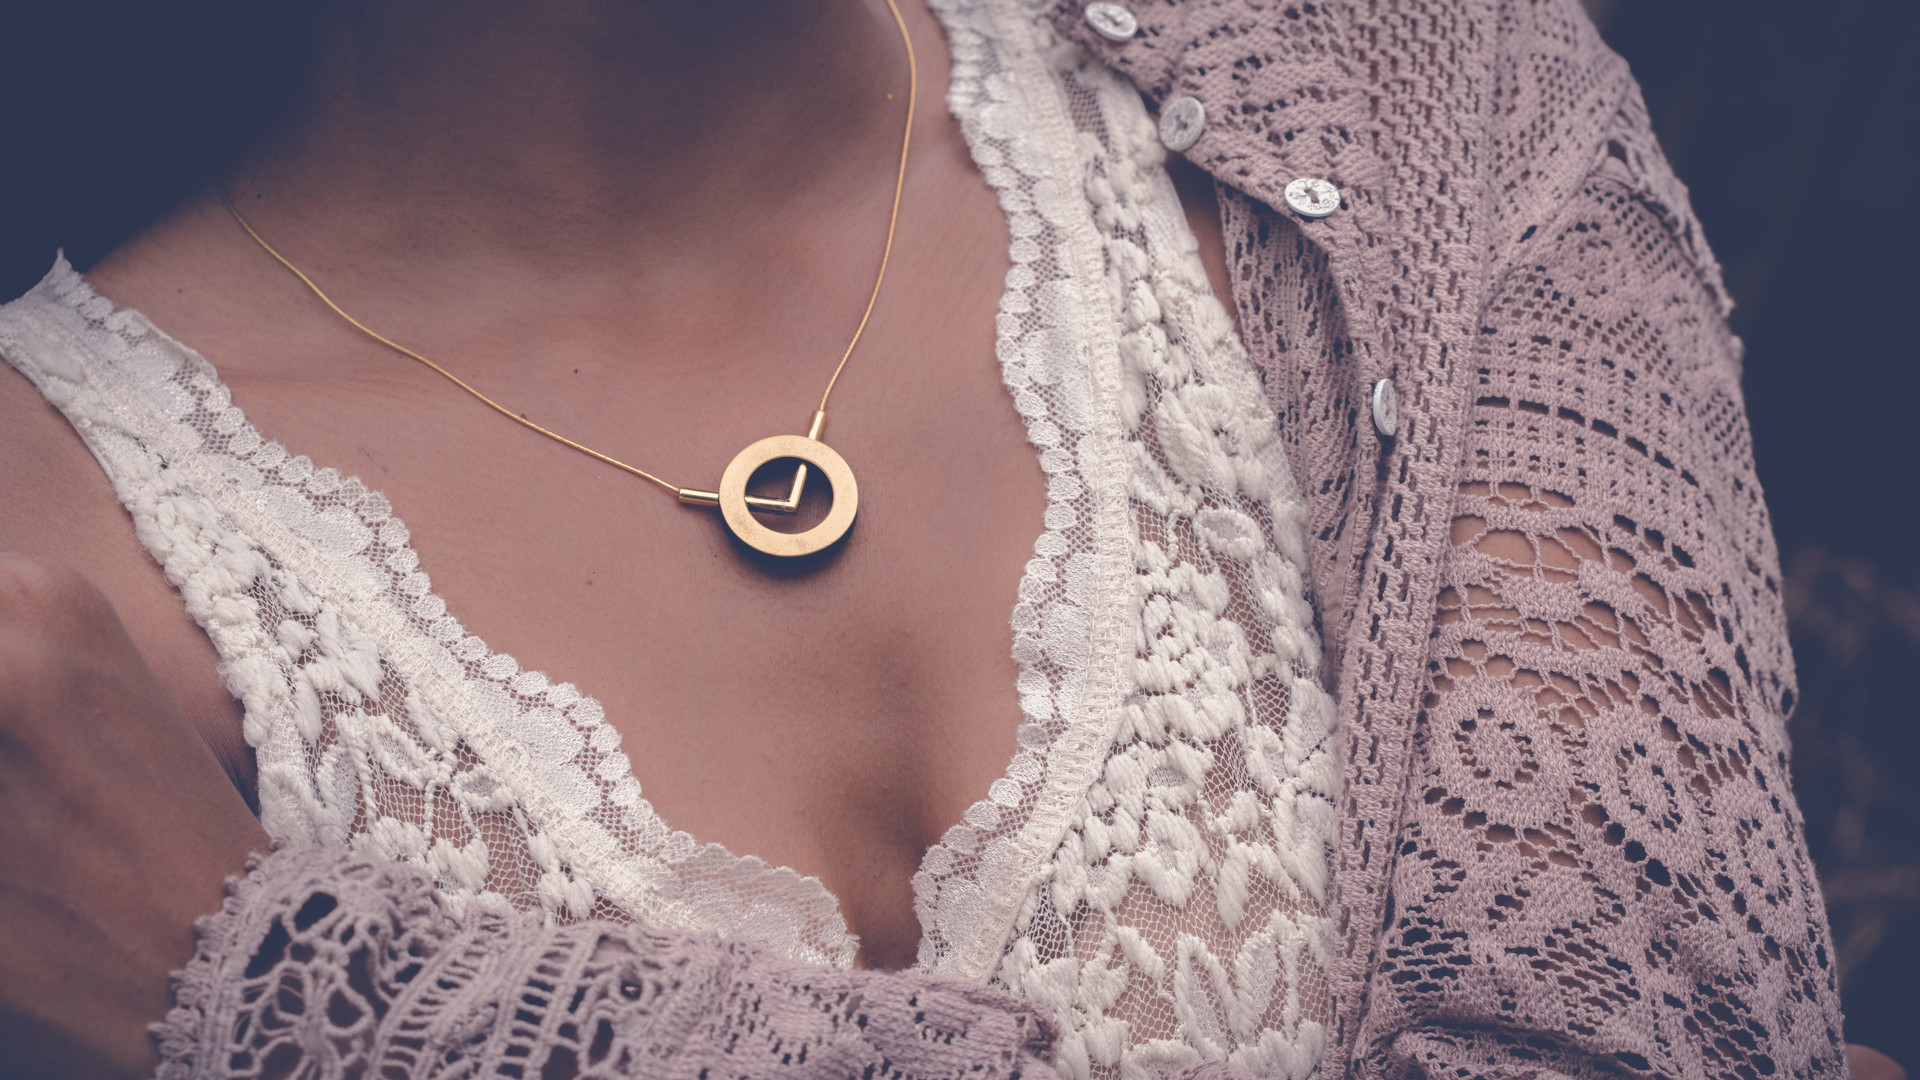 Reversible O Necklace